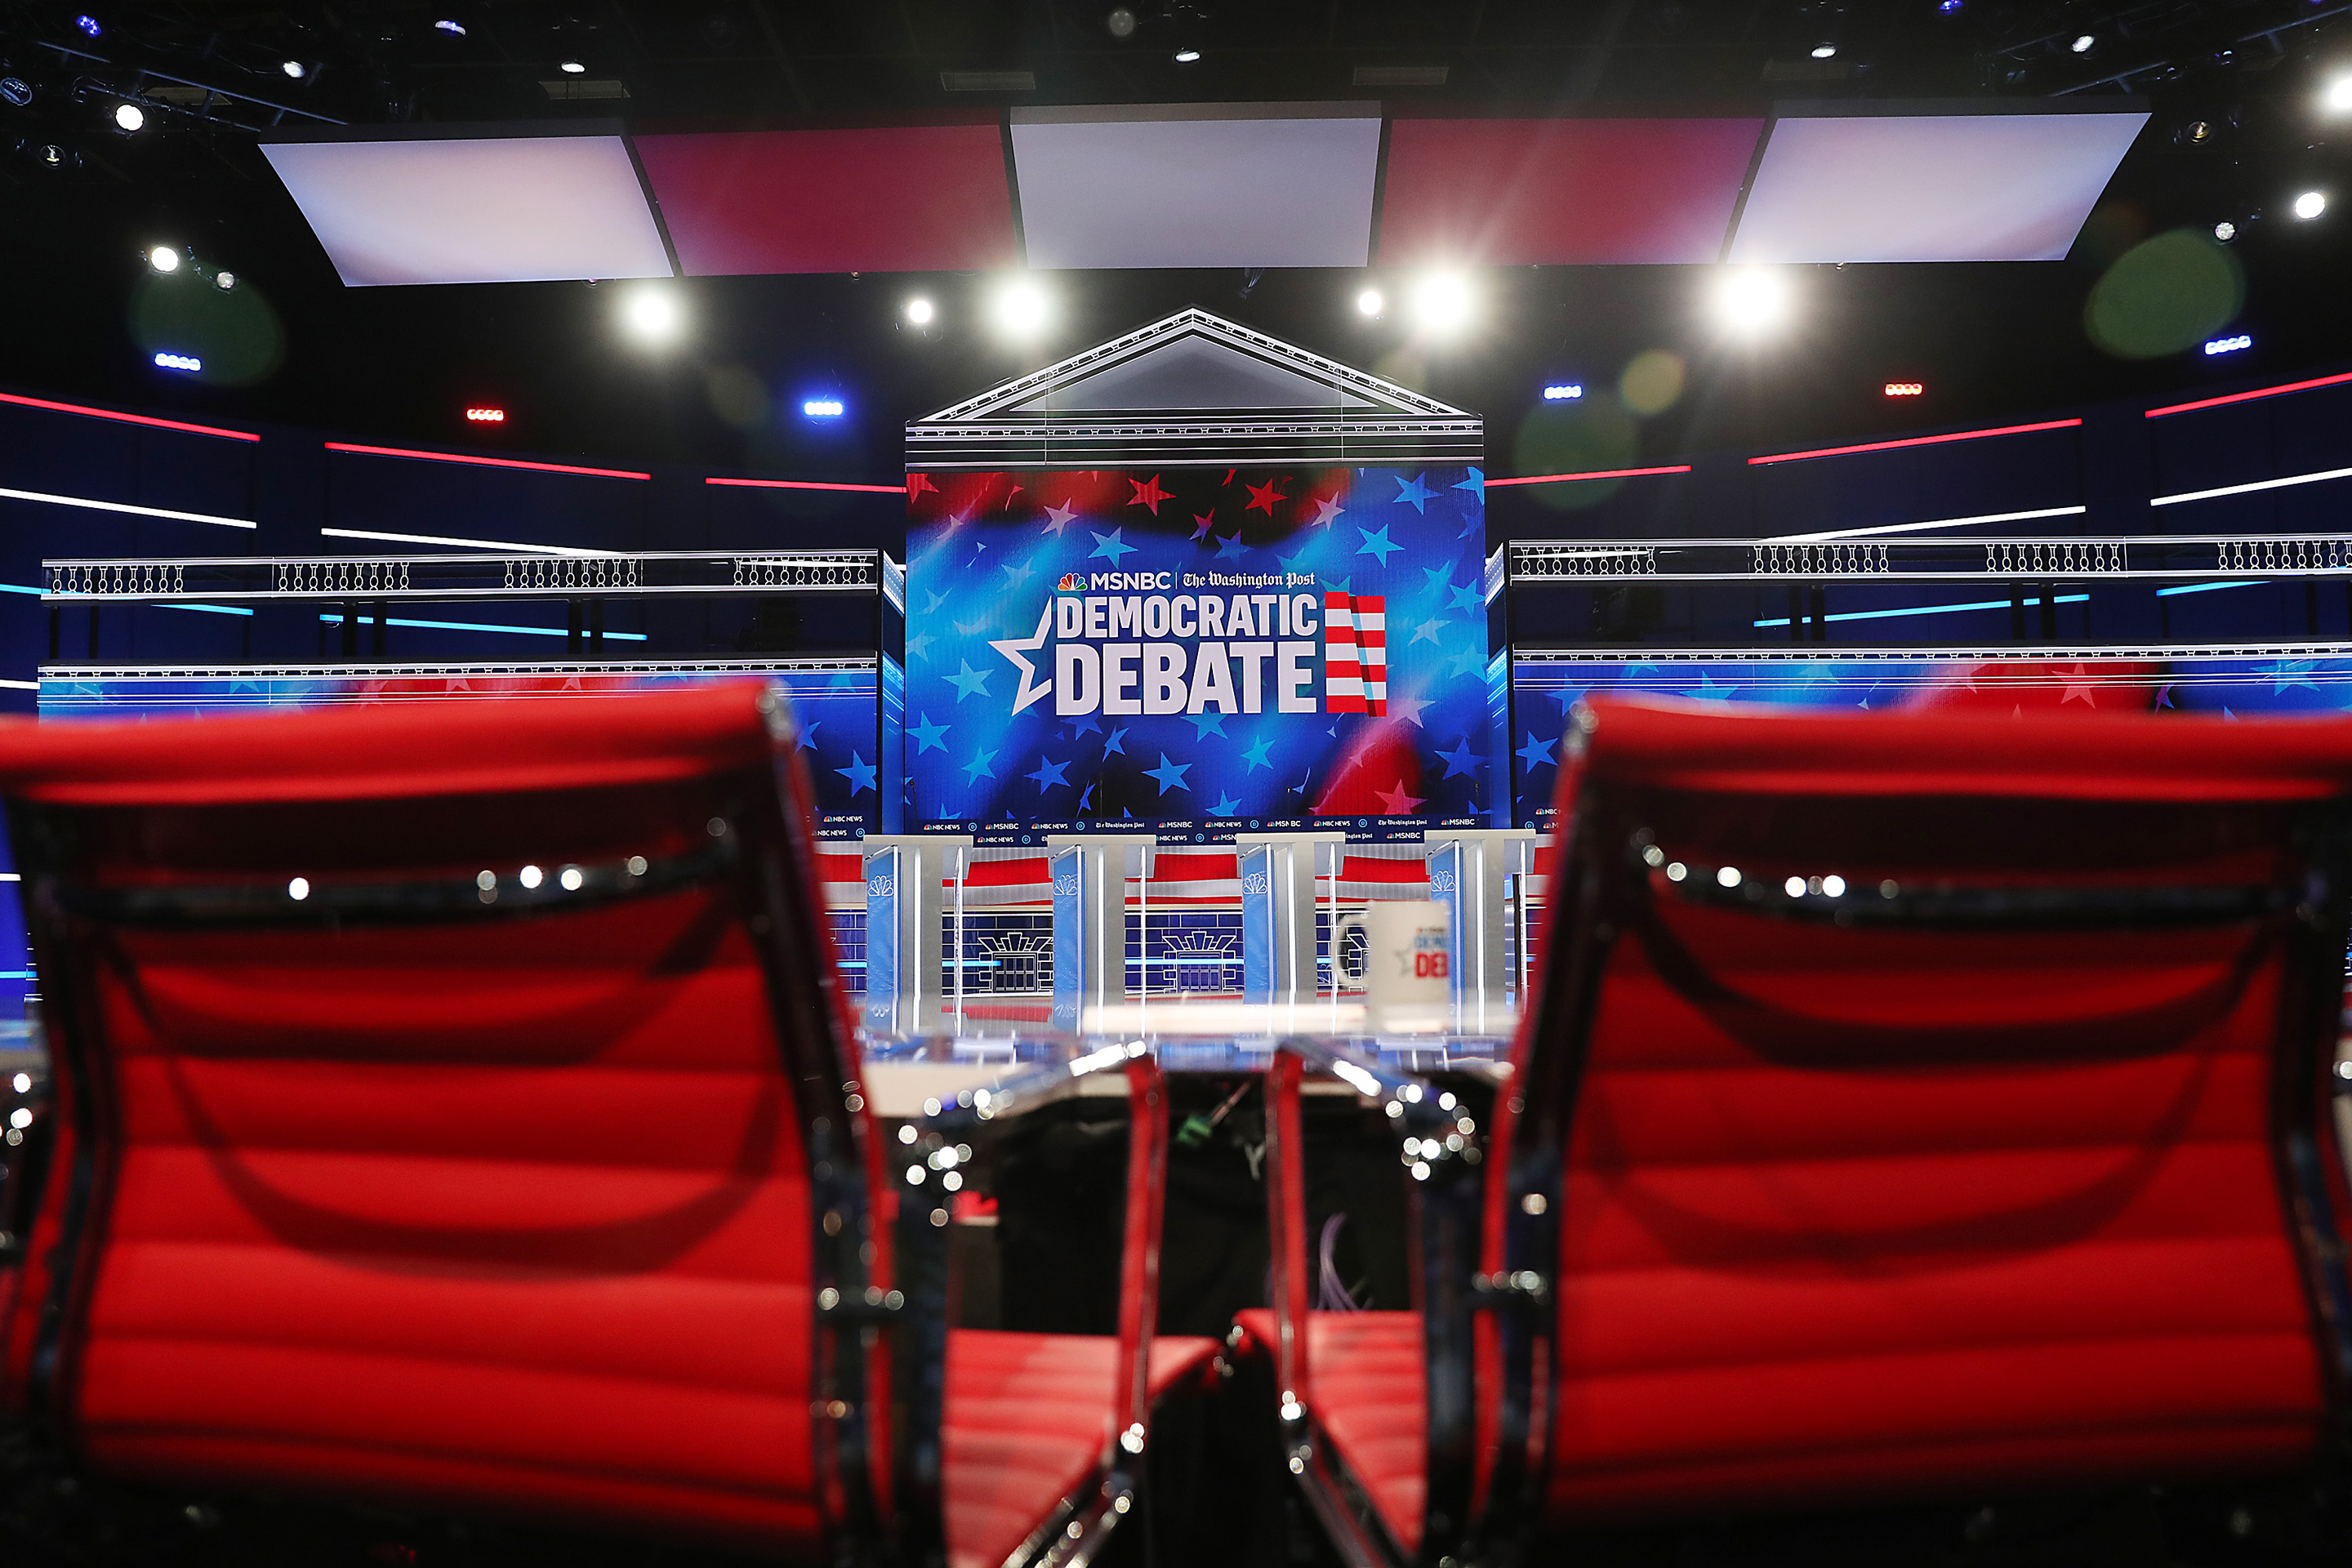 Will You Watch Tonight's Democratic Debate? The DNC Probably Doesn't Care Either Way